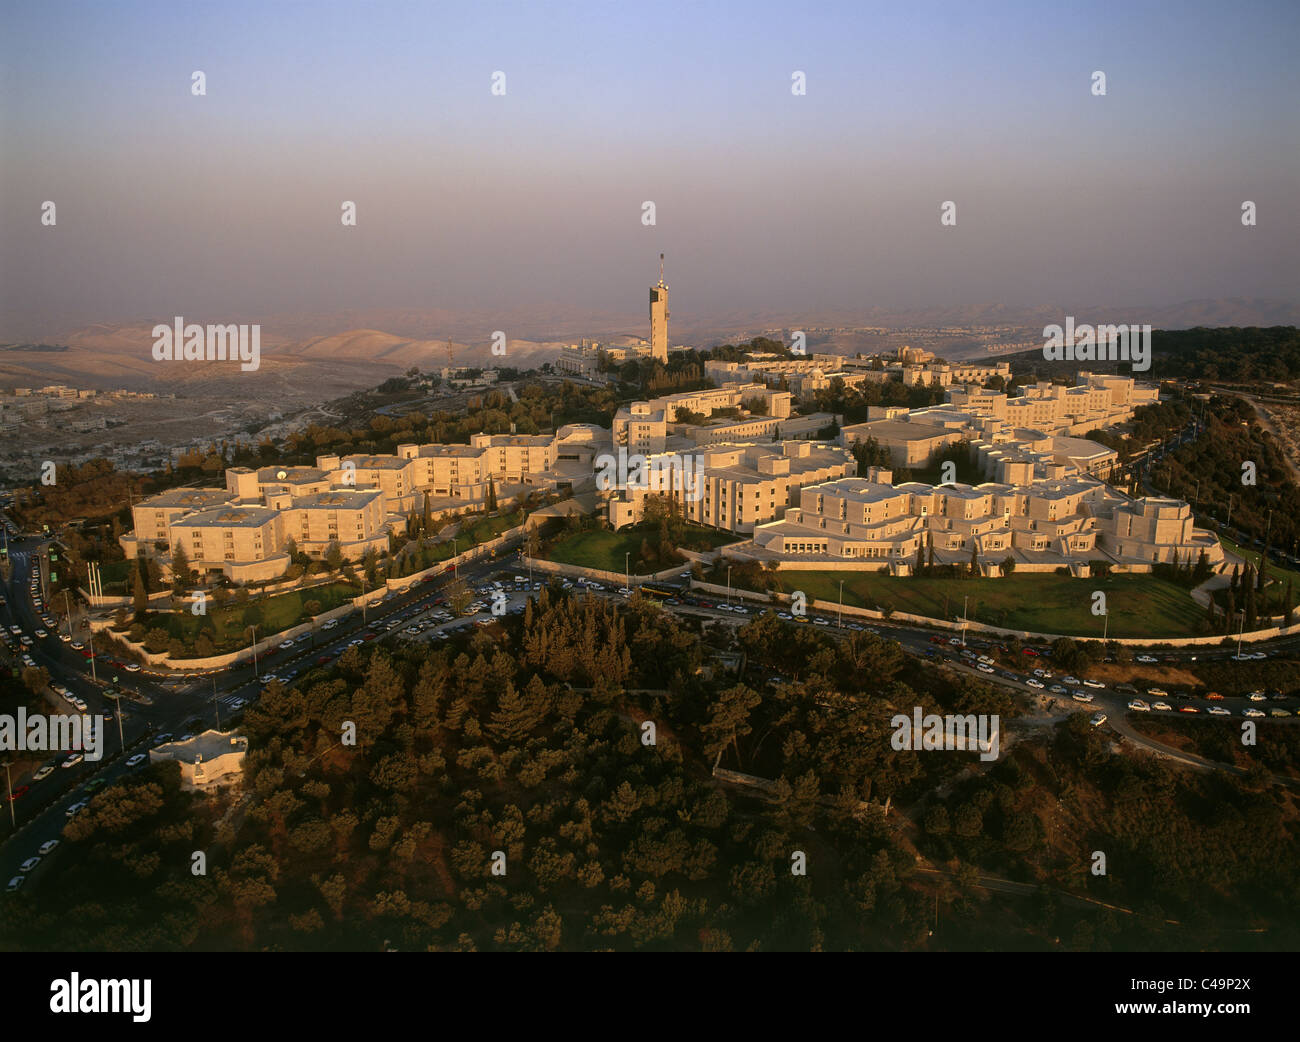 Aerial photograph of the Hebrew University on the summit of mount Scopus in Eastern Jerusalem - Stock Image